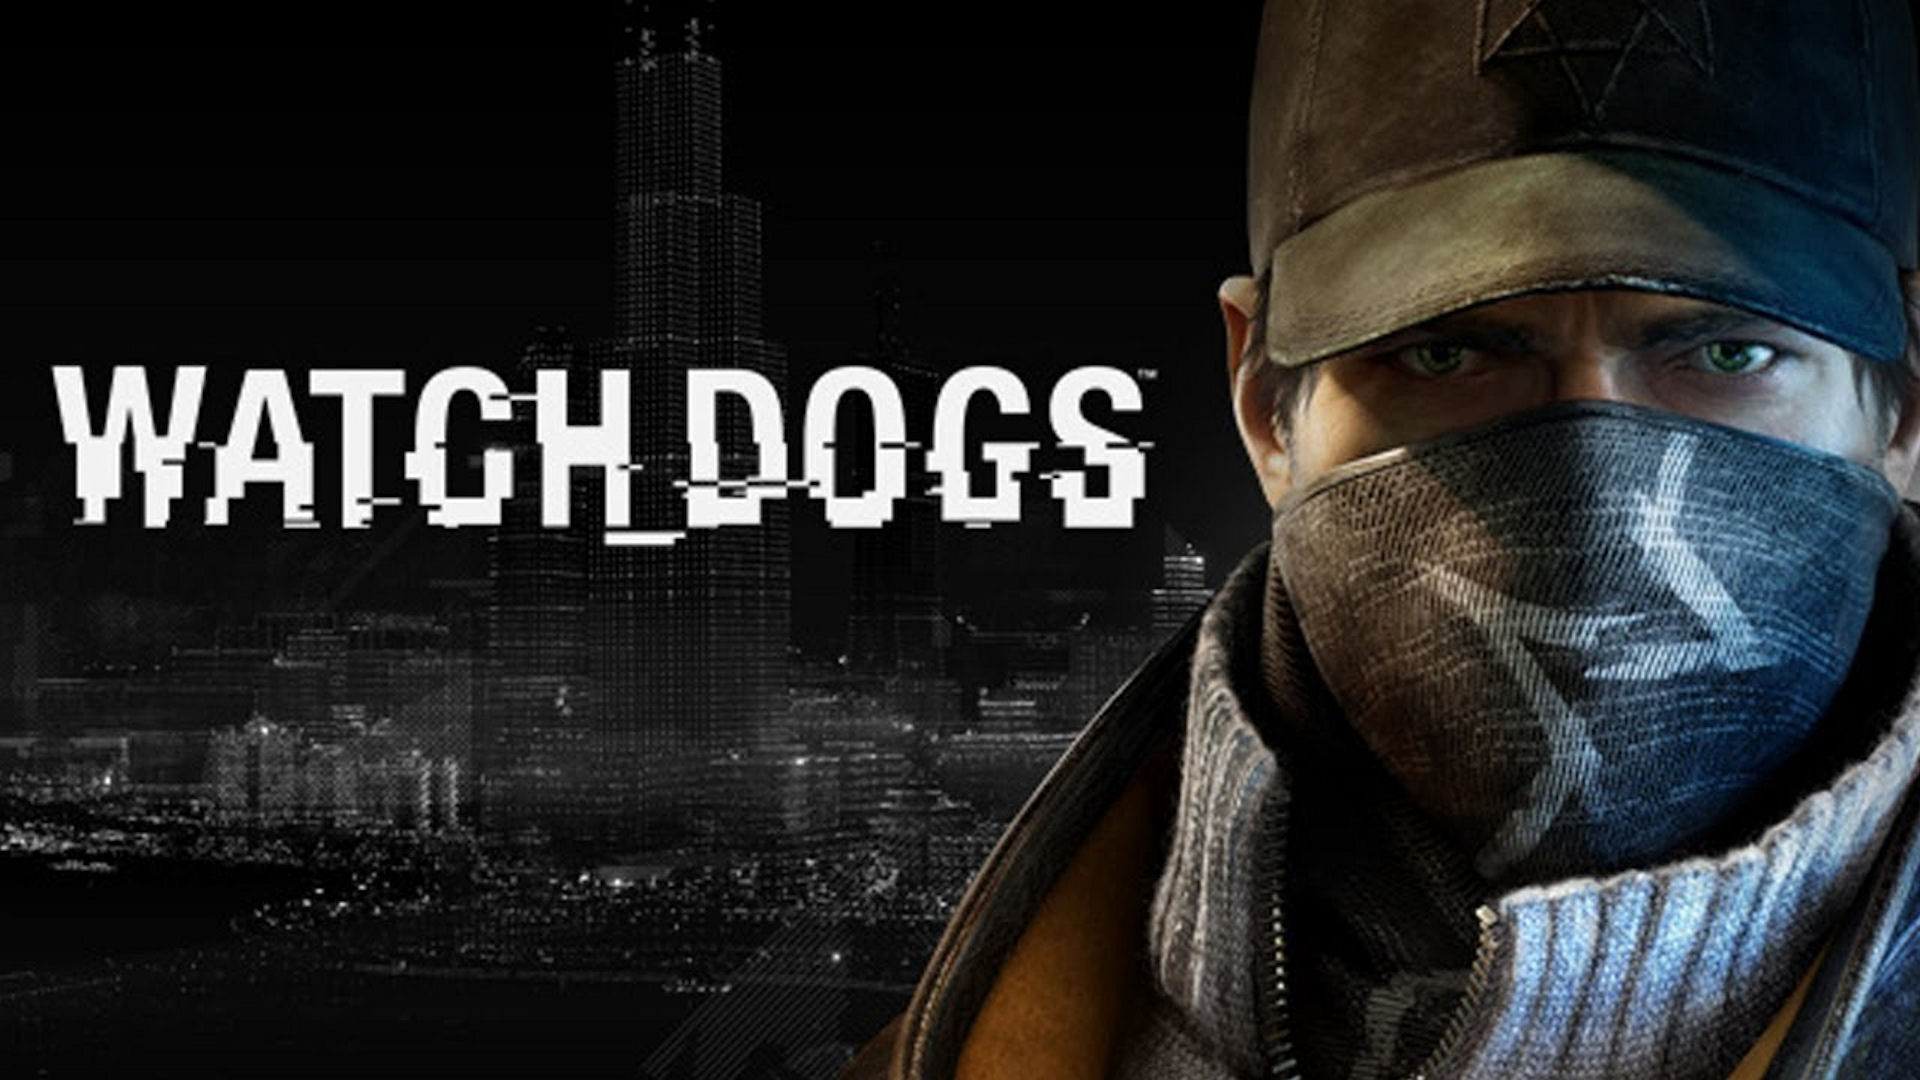 Watch Dogs gratuit sur PC !